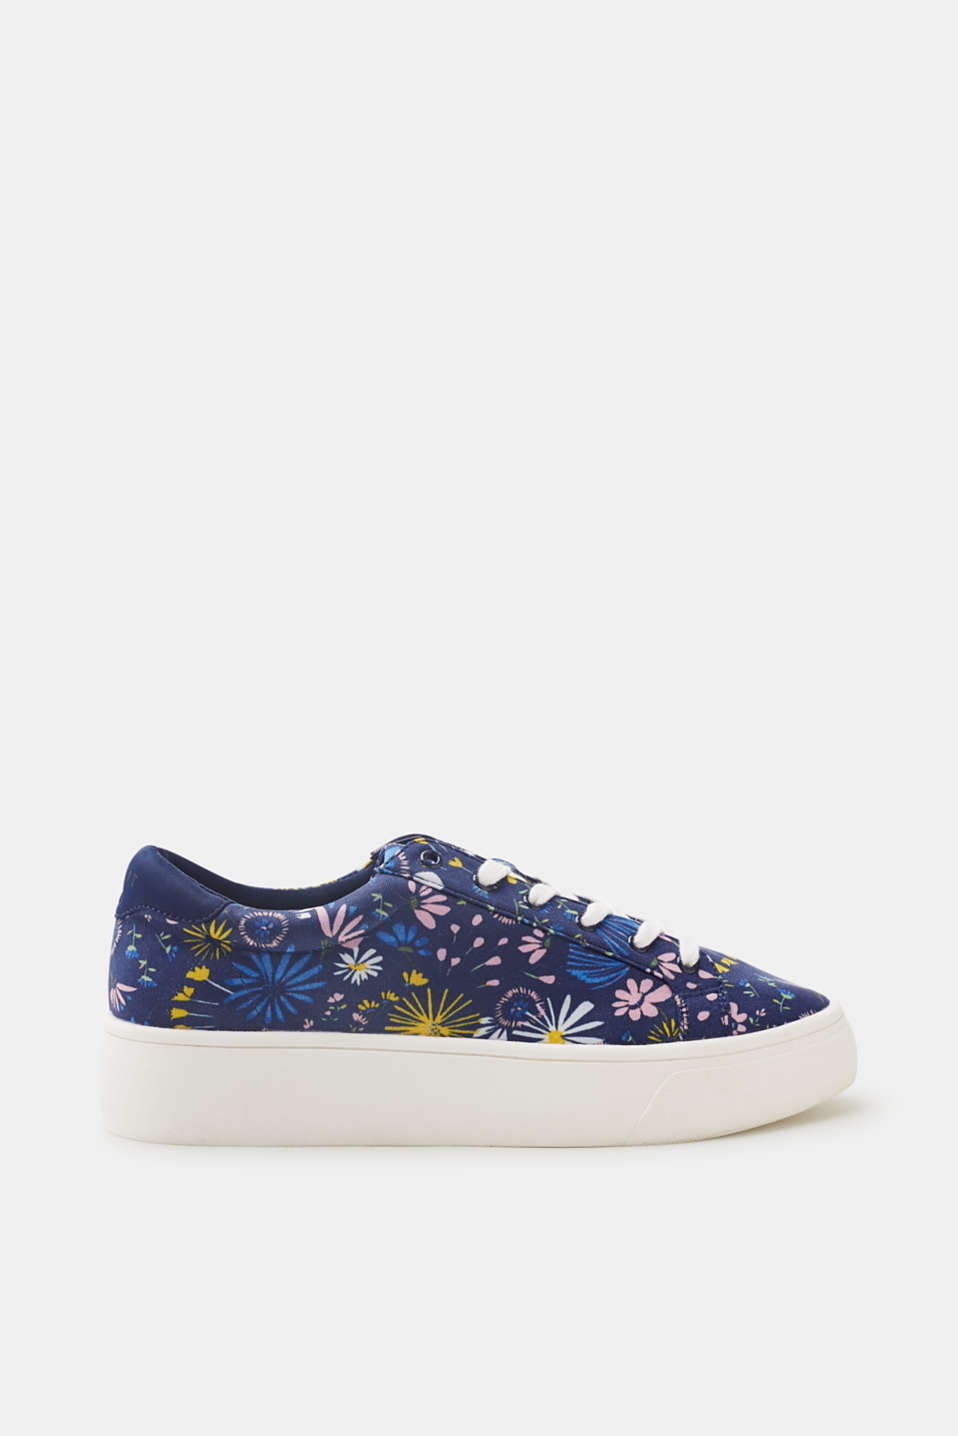 Esprit - Sneakers à plateforme à imprimé floral all-over